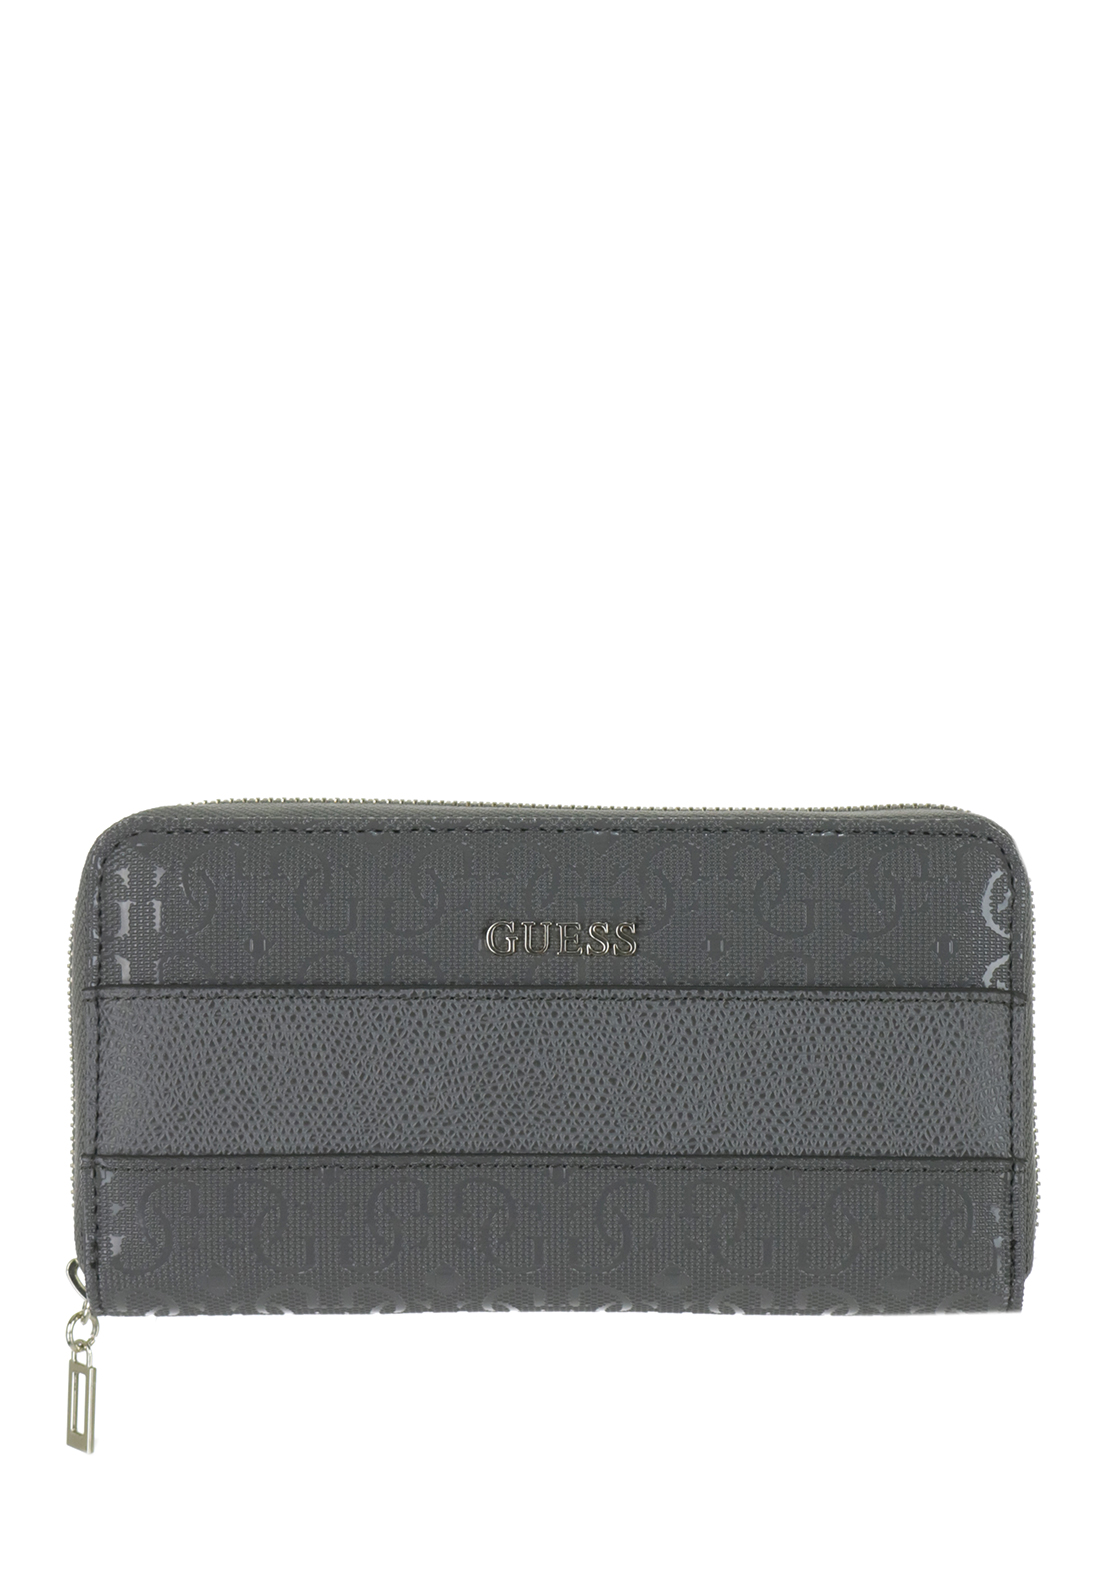 Guess Janette Zip around Medium Wristlet Purse, Grey